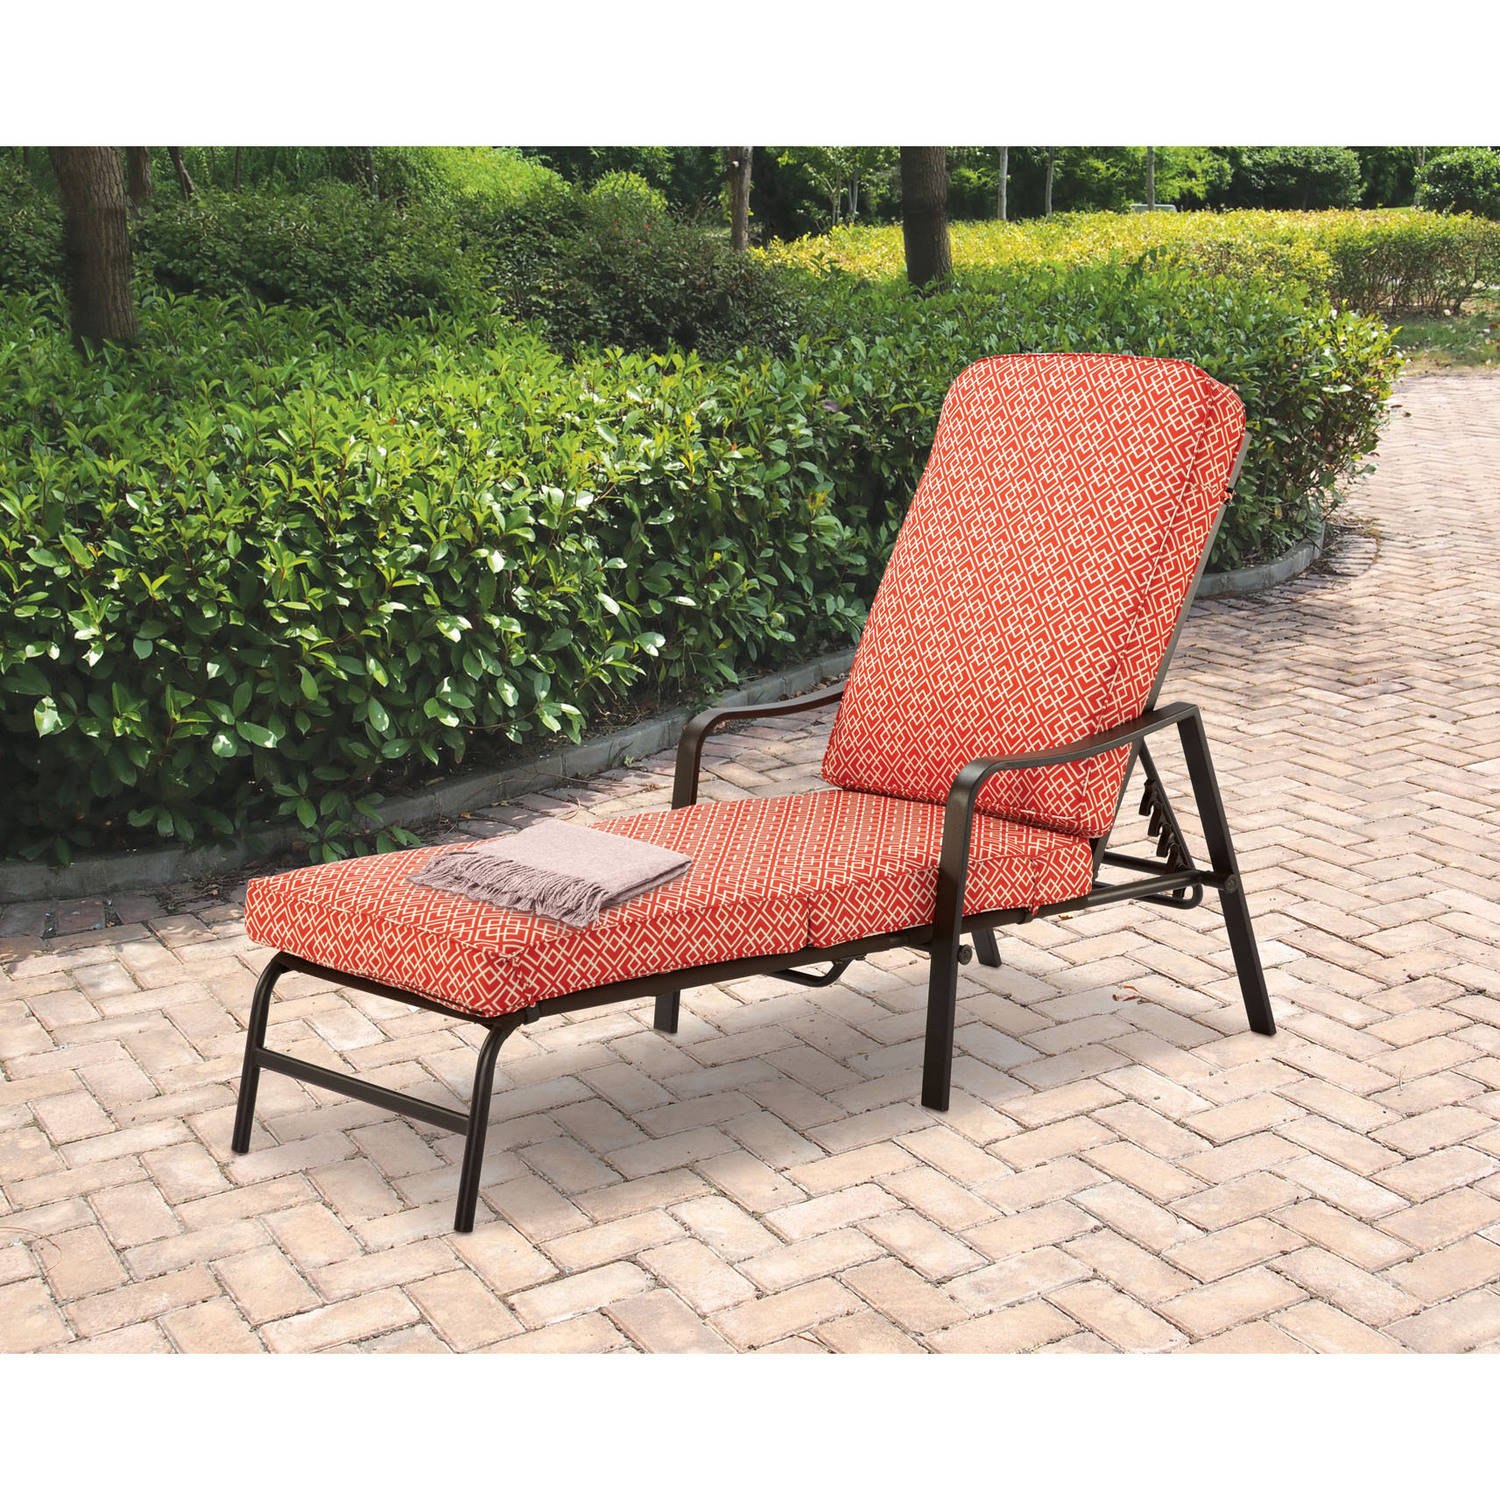 mainstays outdoor patio chaise lounge with adjustable back orange geo pattern walmart com